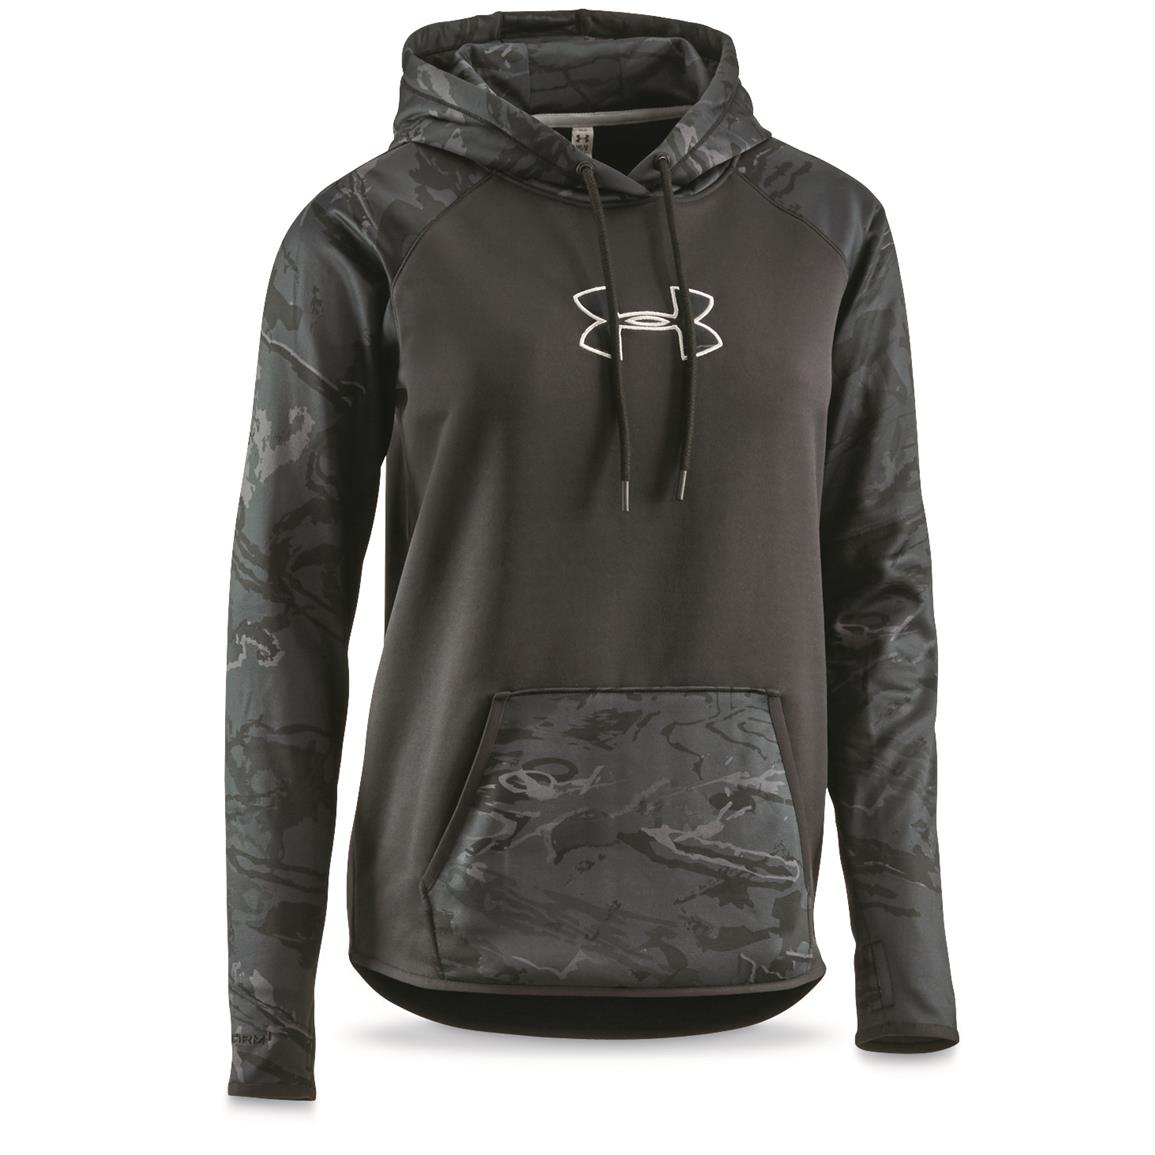 Under Armour Women's Icon Caliber Hoodie, Black / Black Tonal Reaper